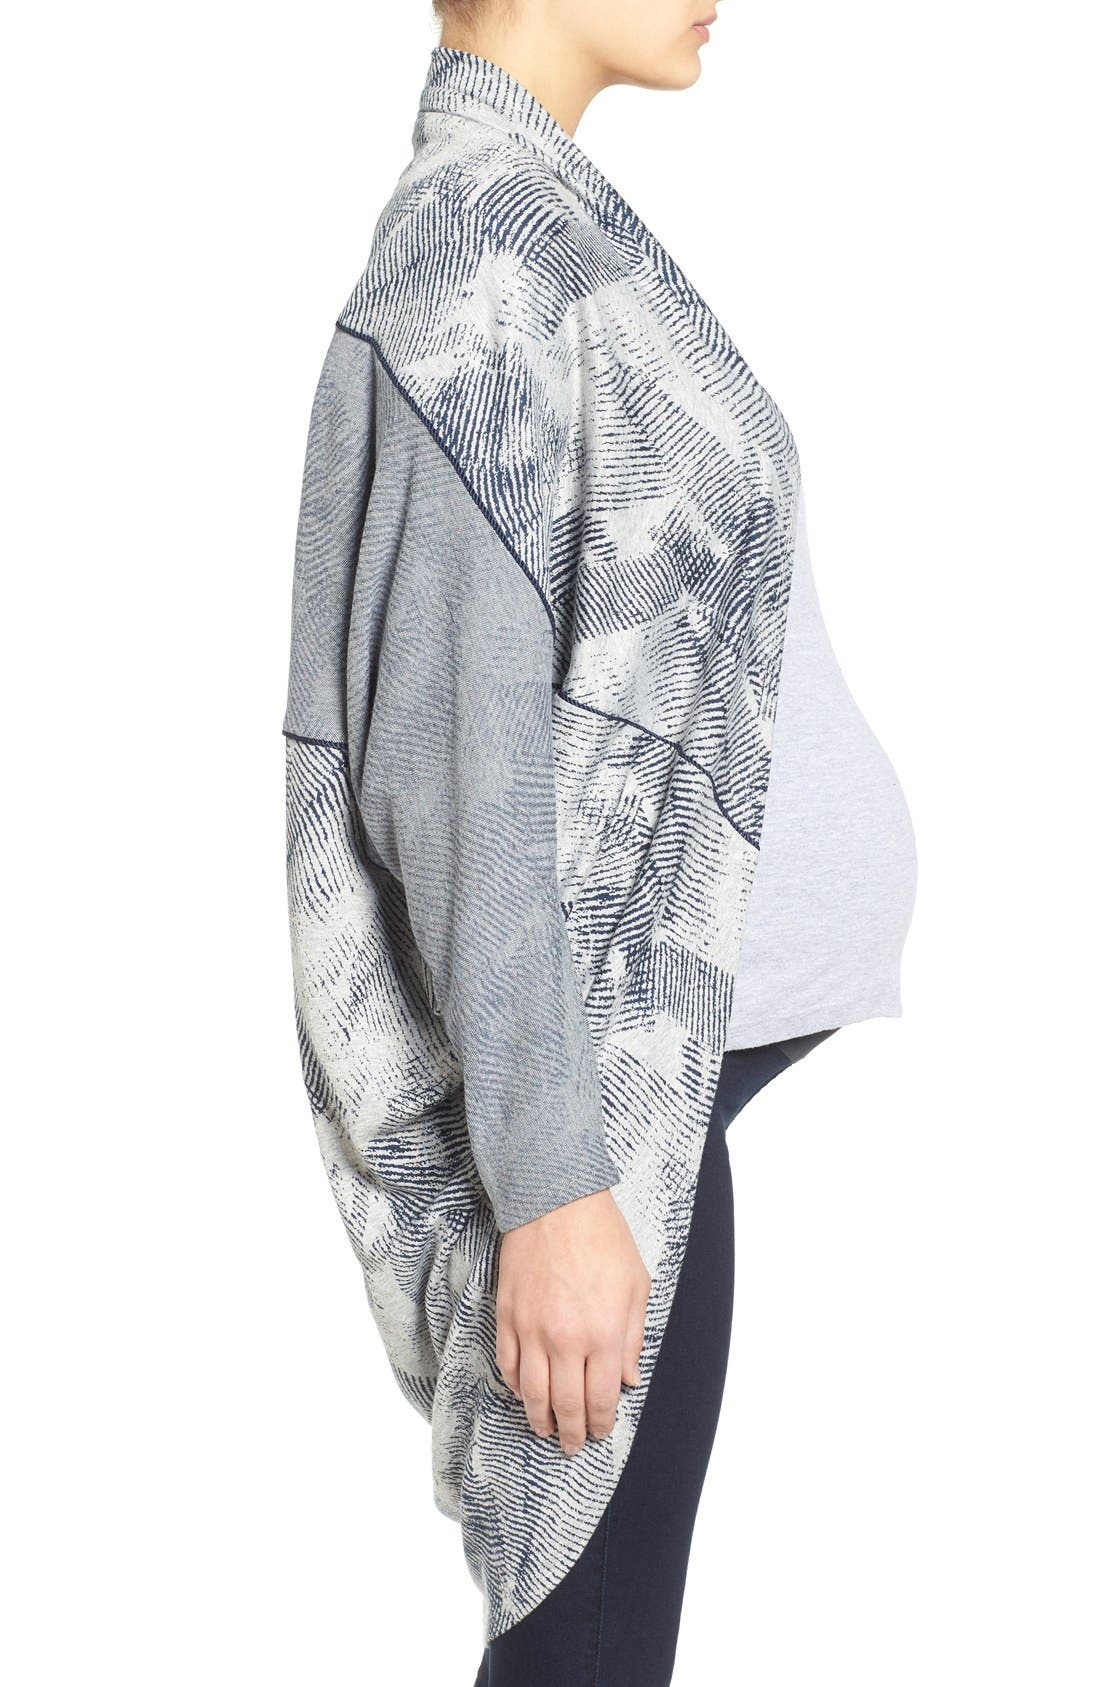 'Meesha' Open Front Maternity Cardigan,                             Alternate thumbnail 2, color,                             HEATHER GREY/NAVY